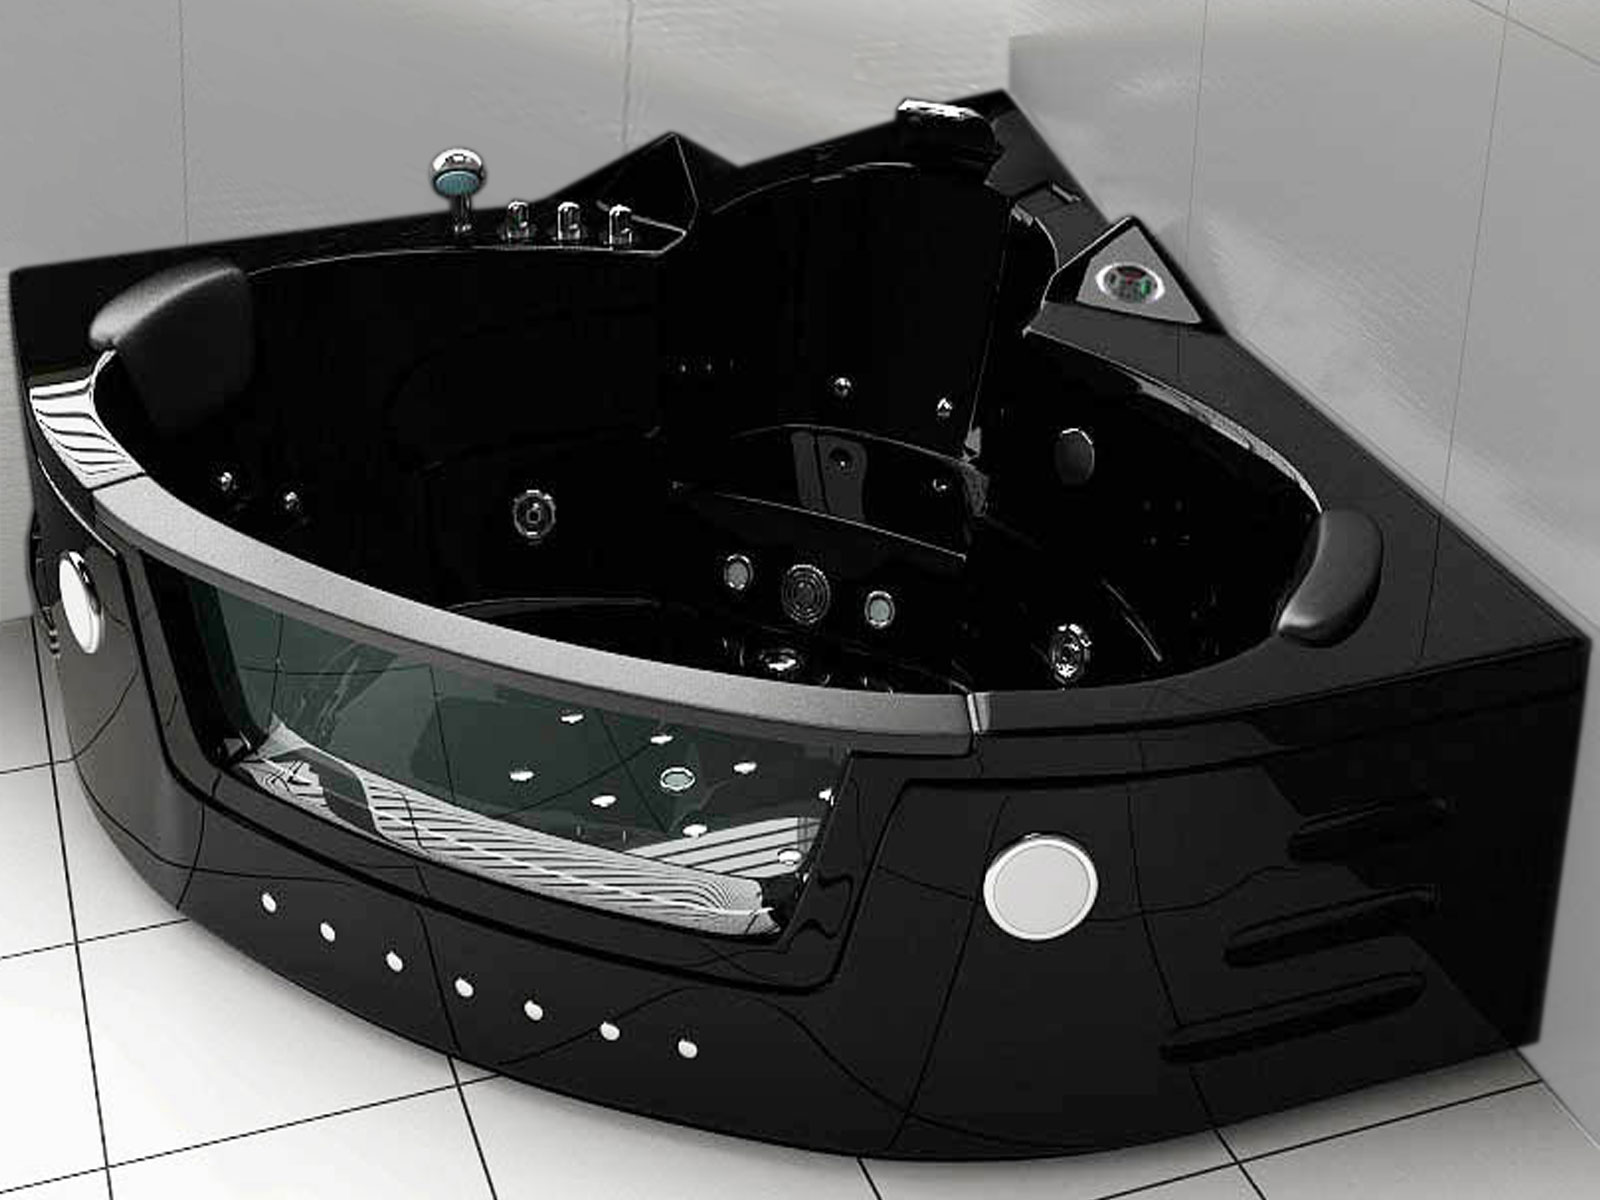 MAJESTIC - Whirpool Bathtub hot tub Black - SimbashoppingUSA